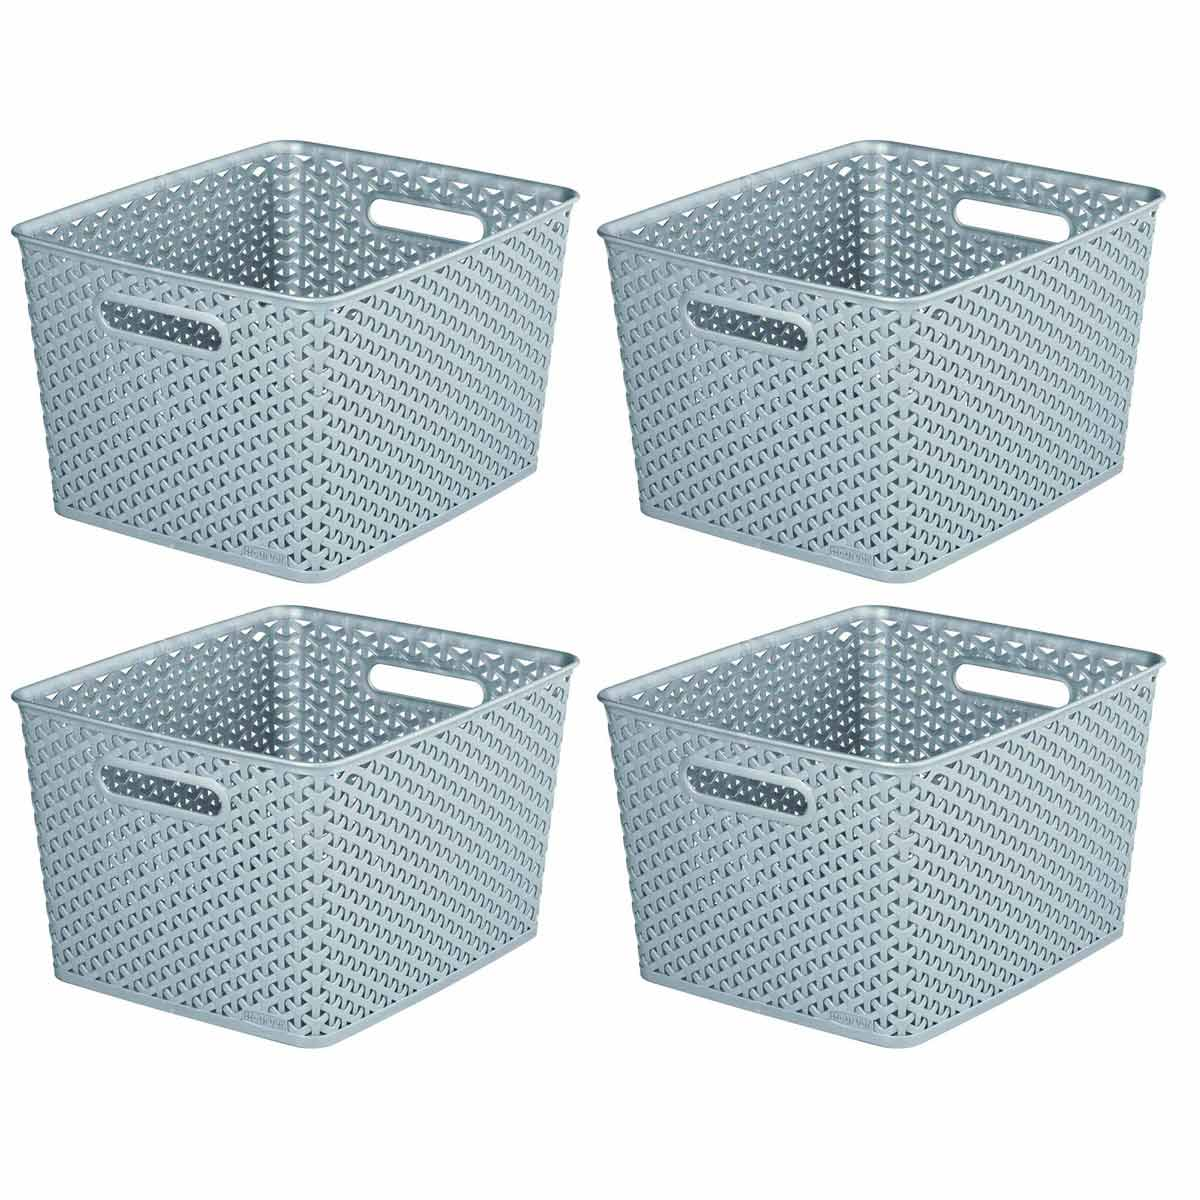 Curver My Style Storage Basket 18 Litres Pack of 4, Grey